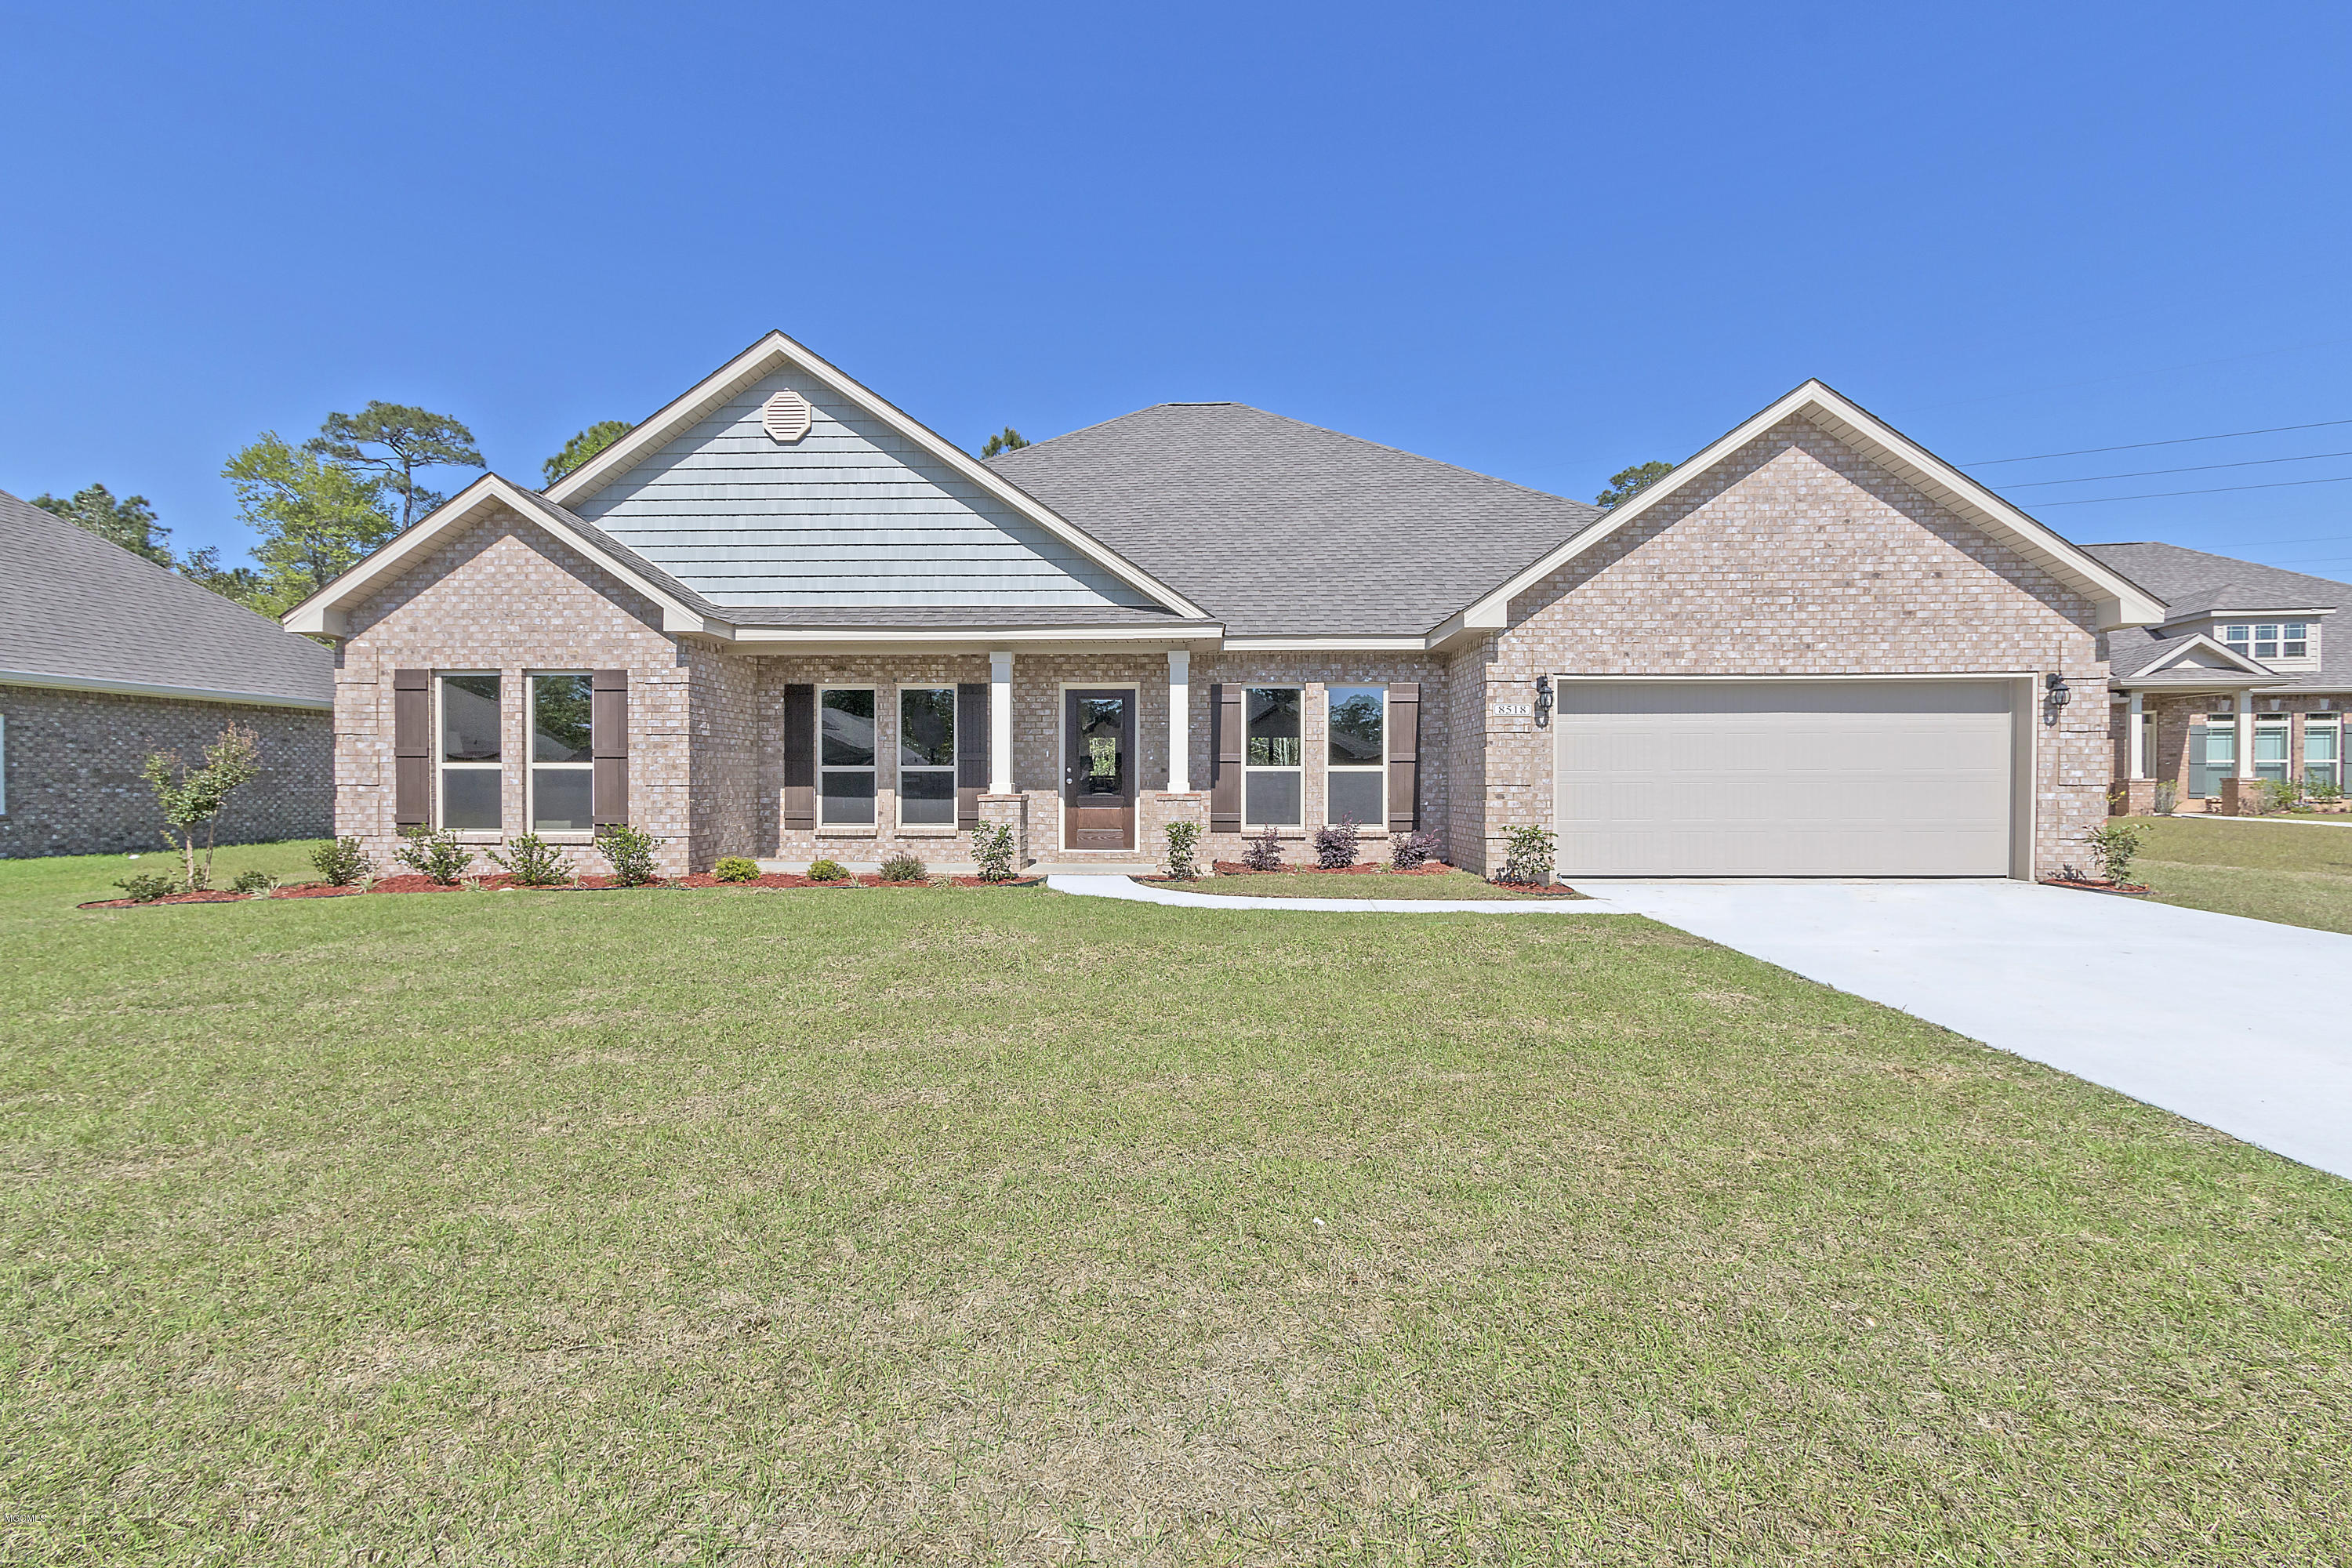 6610 Sugarcane Cir,Ocean Springs,Mississippi 39564,4 Bedrooms Bedrooms,3 BathroomsBathrooms,Single-family,Sugarcane,340145